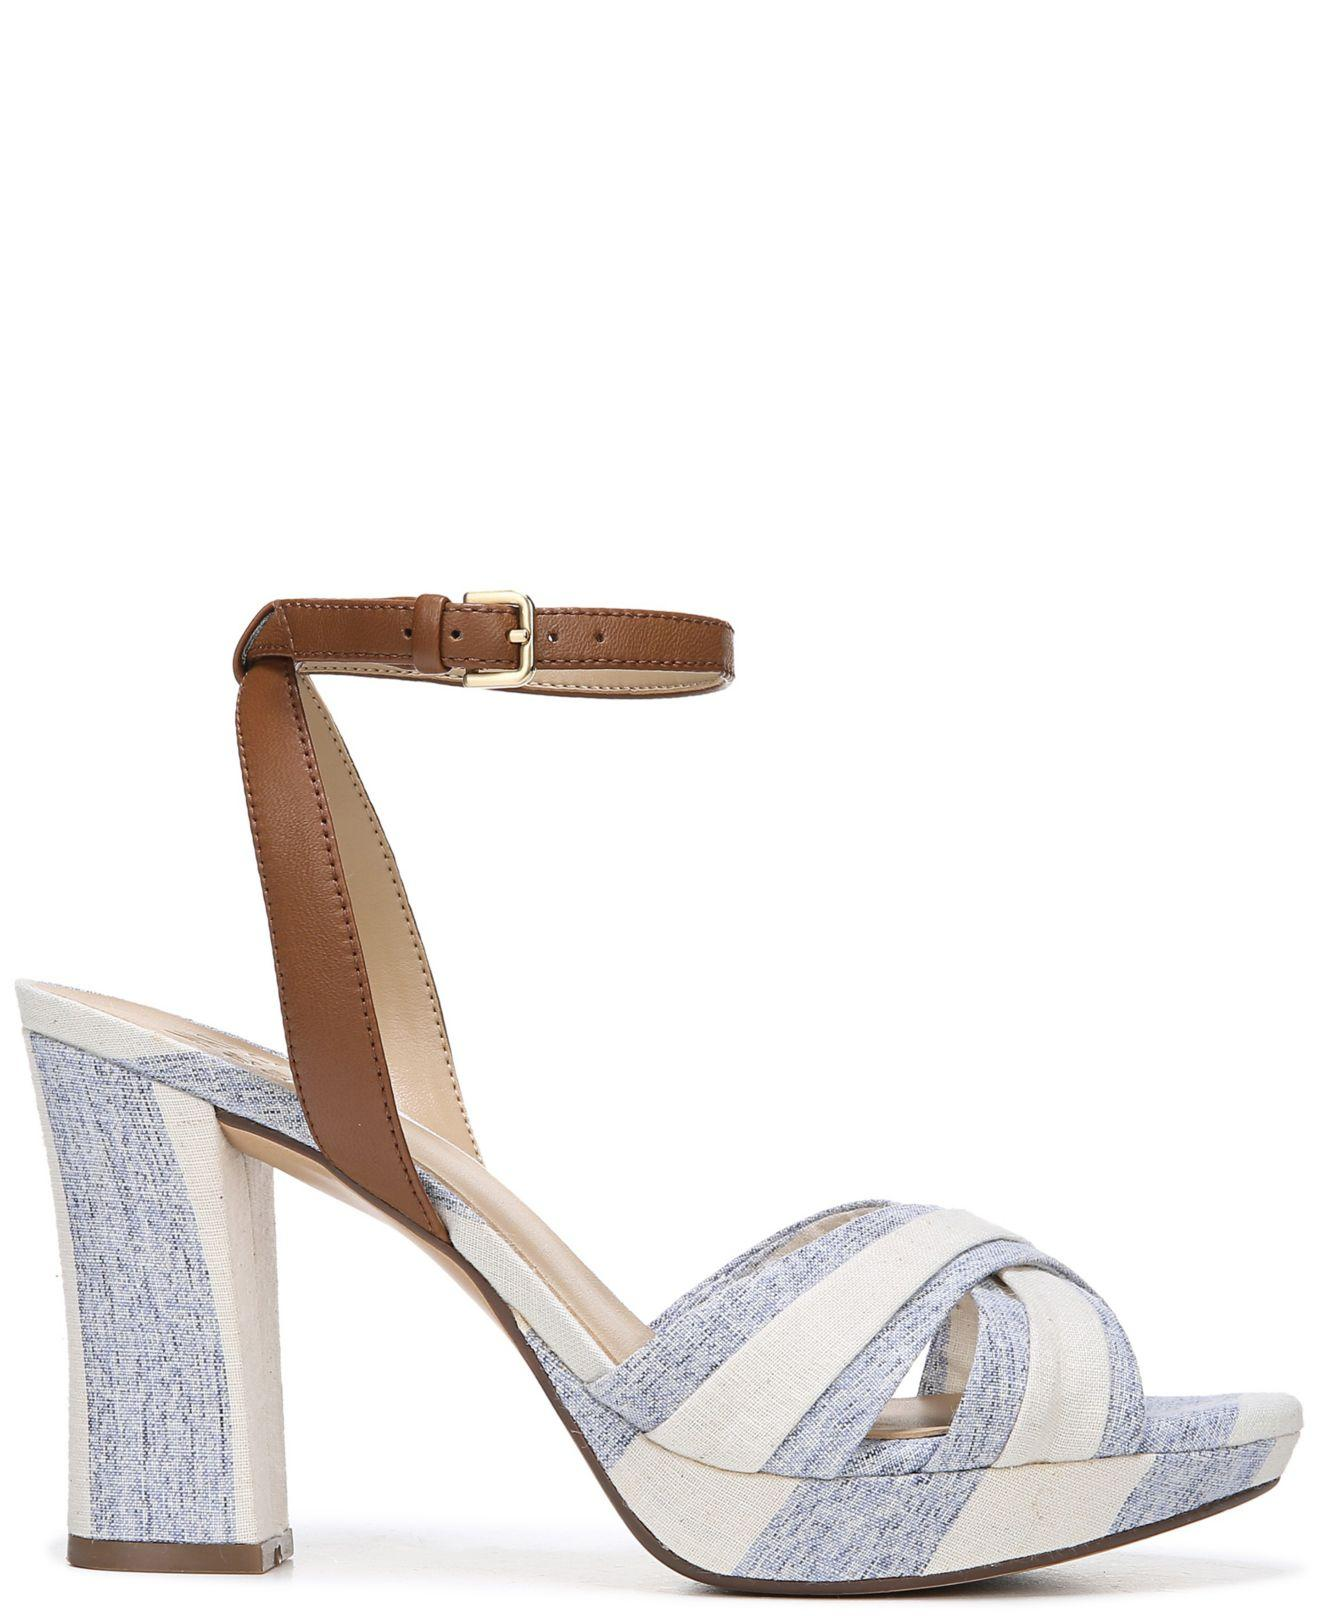 612aee54dea3 Lyst - Naturalizer Avril Ankle Strap Sandals